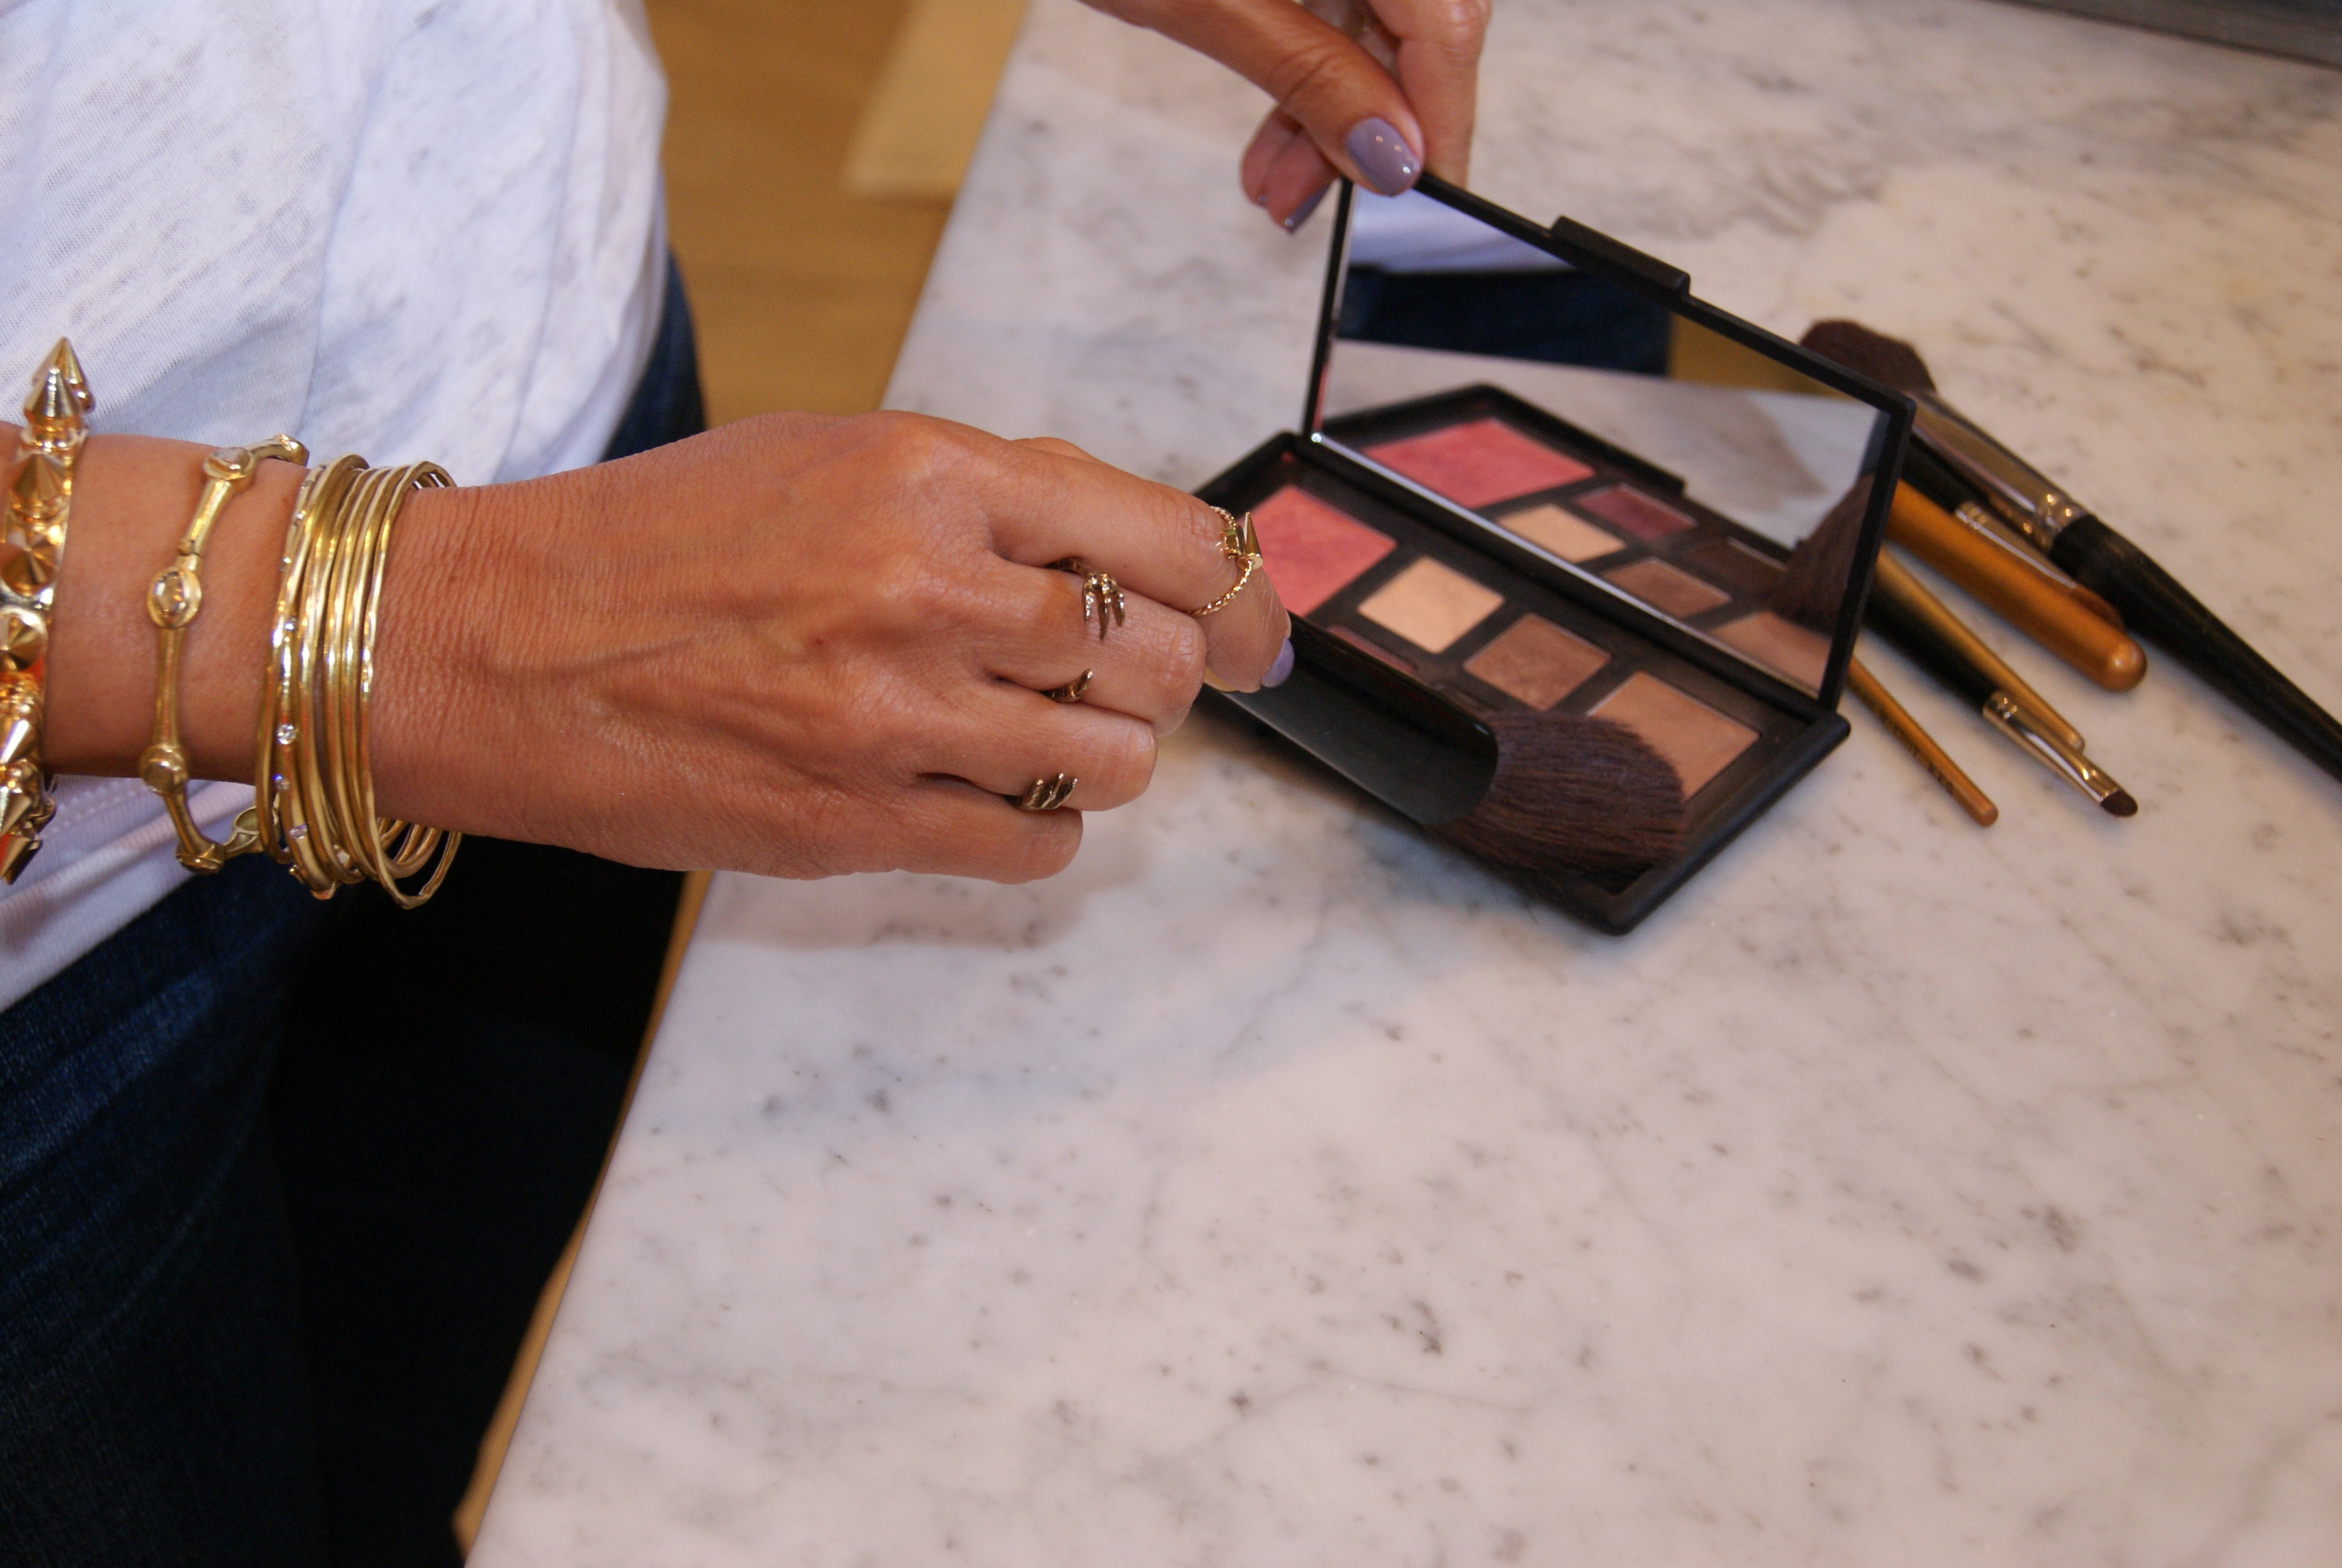 Step 1: Use a large blush brush and generously apply Laguna bronzer all over face.